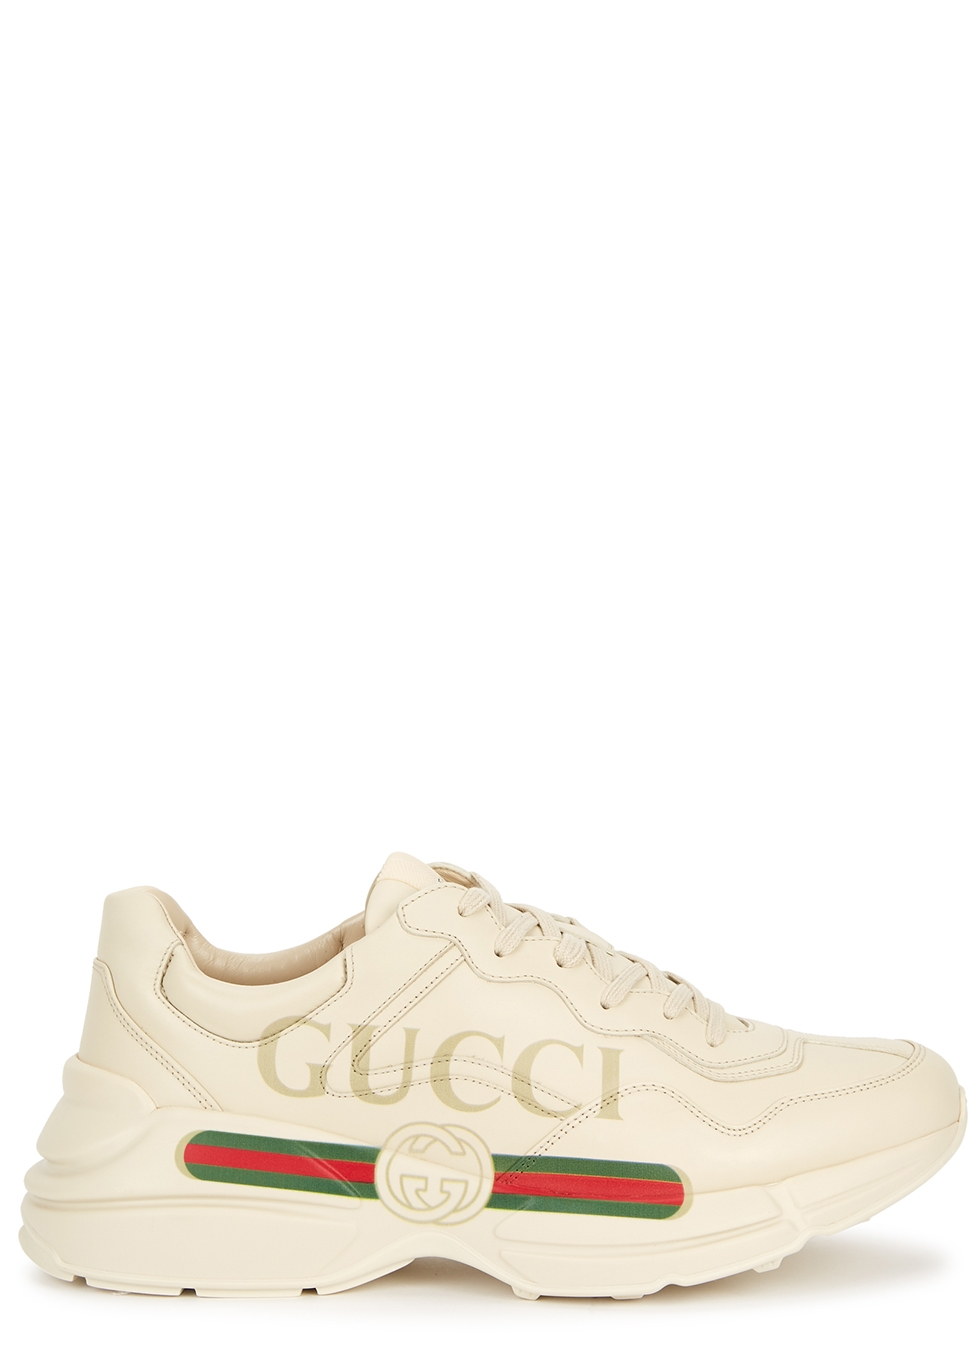 gucci low top trainers